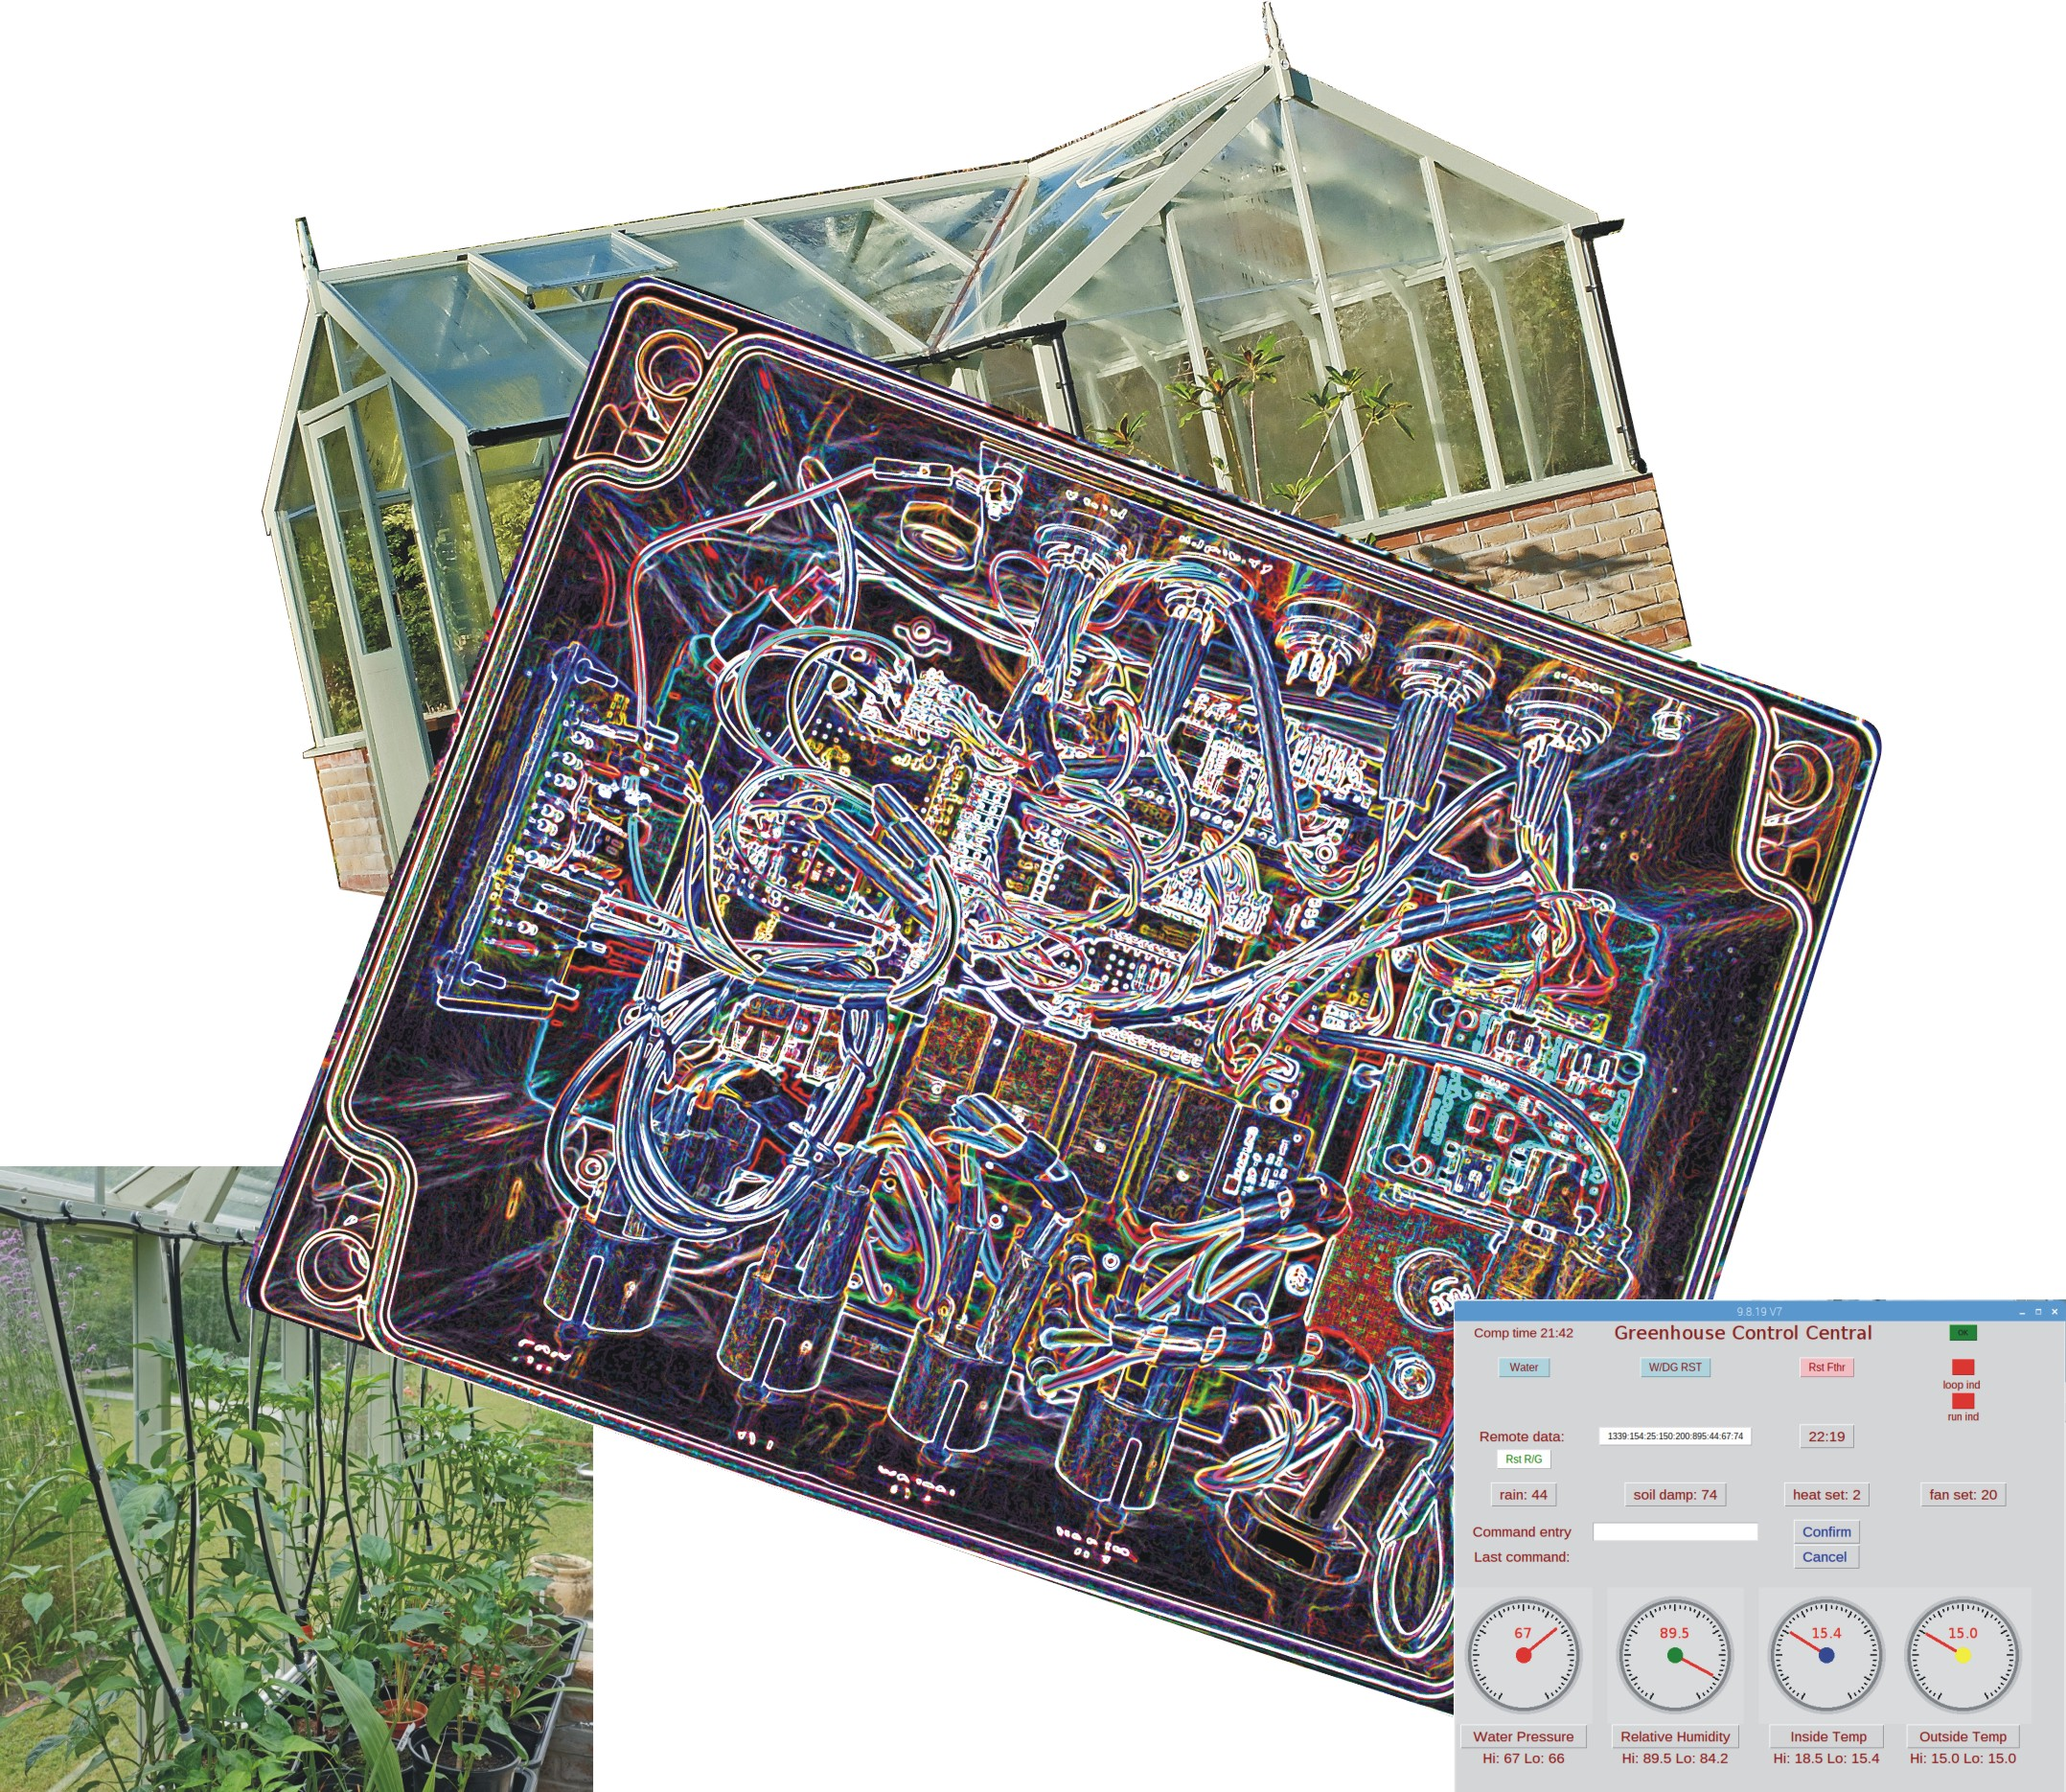 Greenhouse controller header image